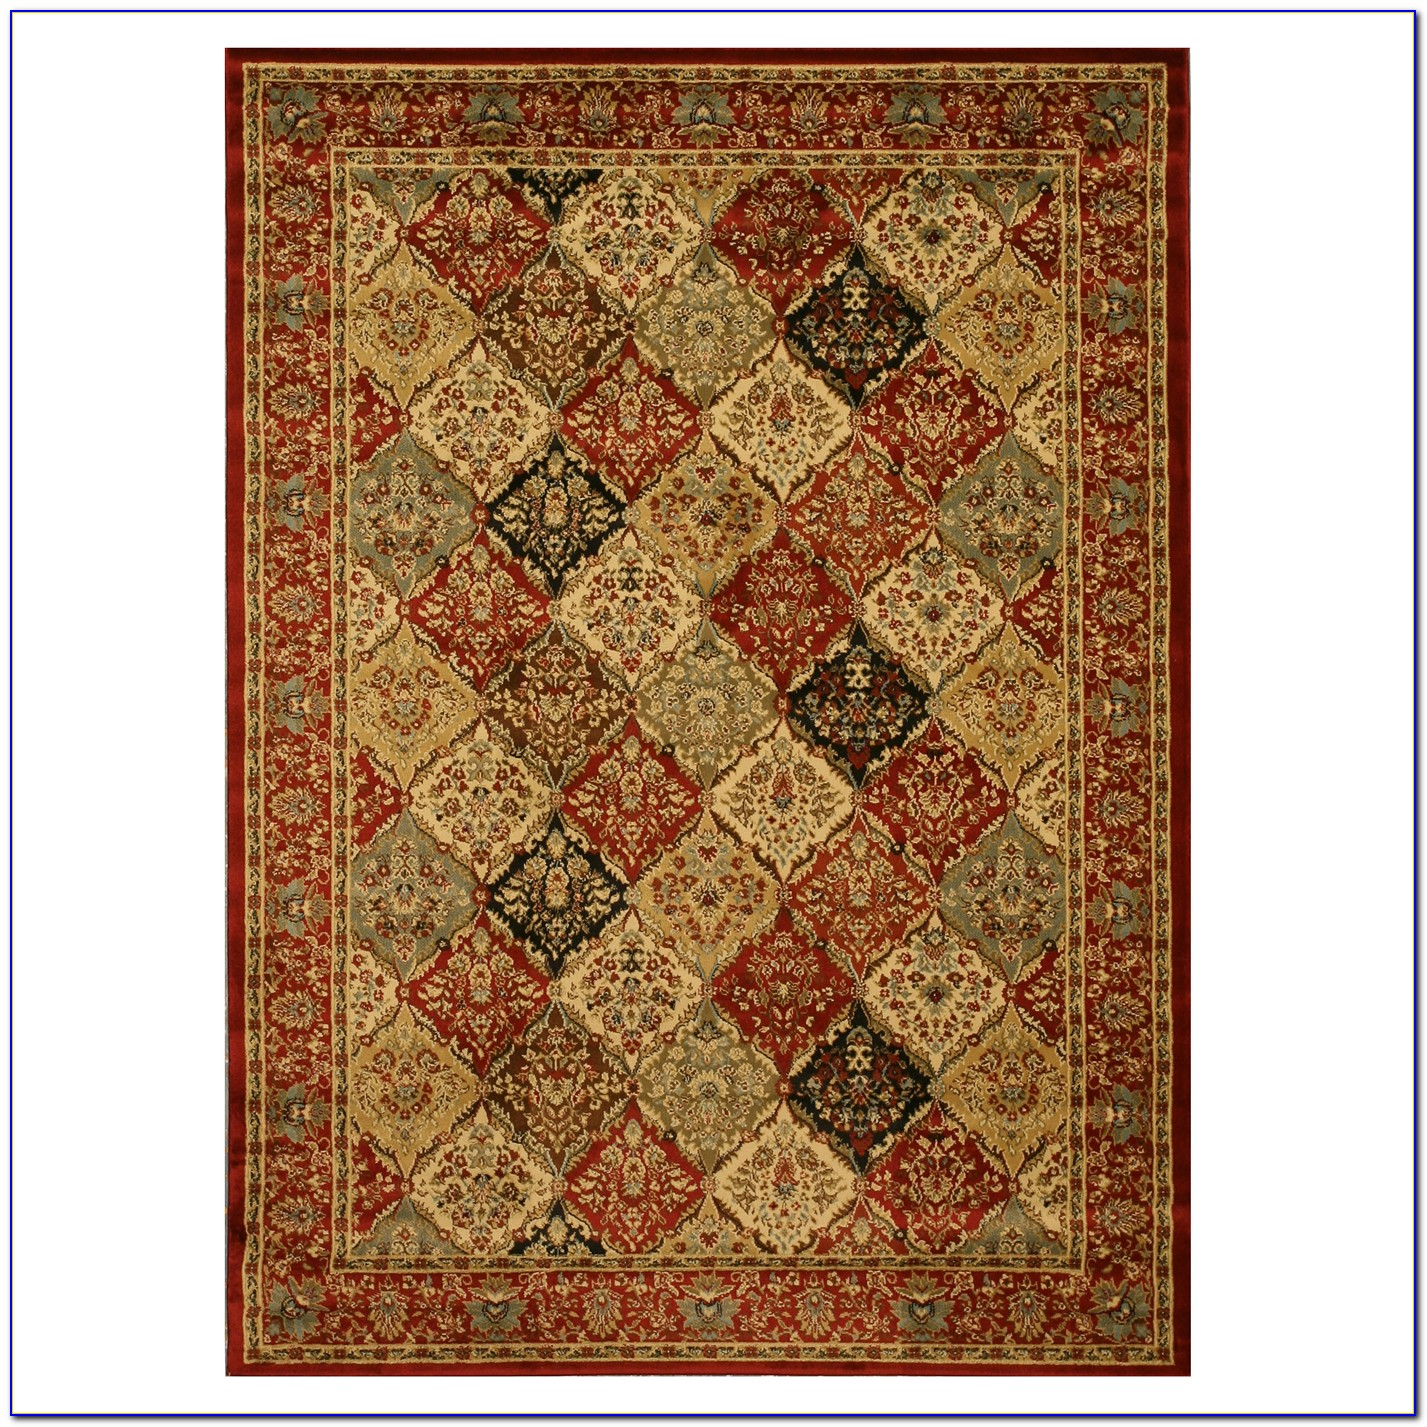 Shop avatar-base.ml for all the best Runner Area Rugs.